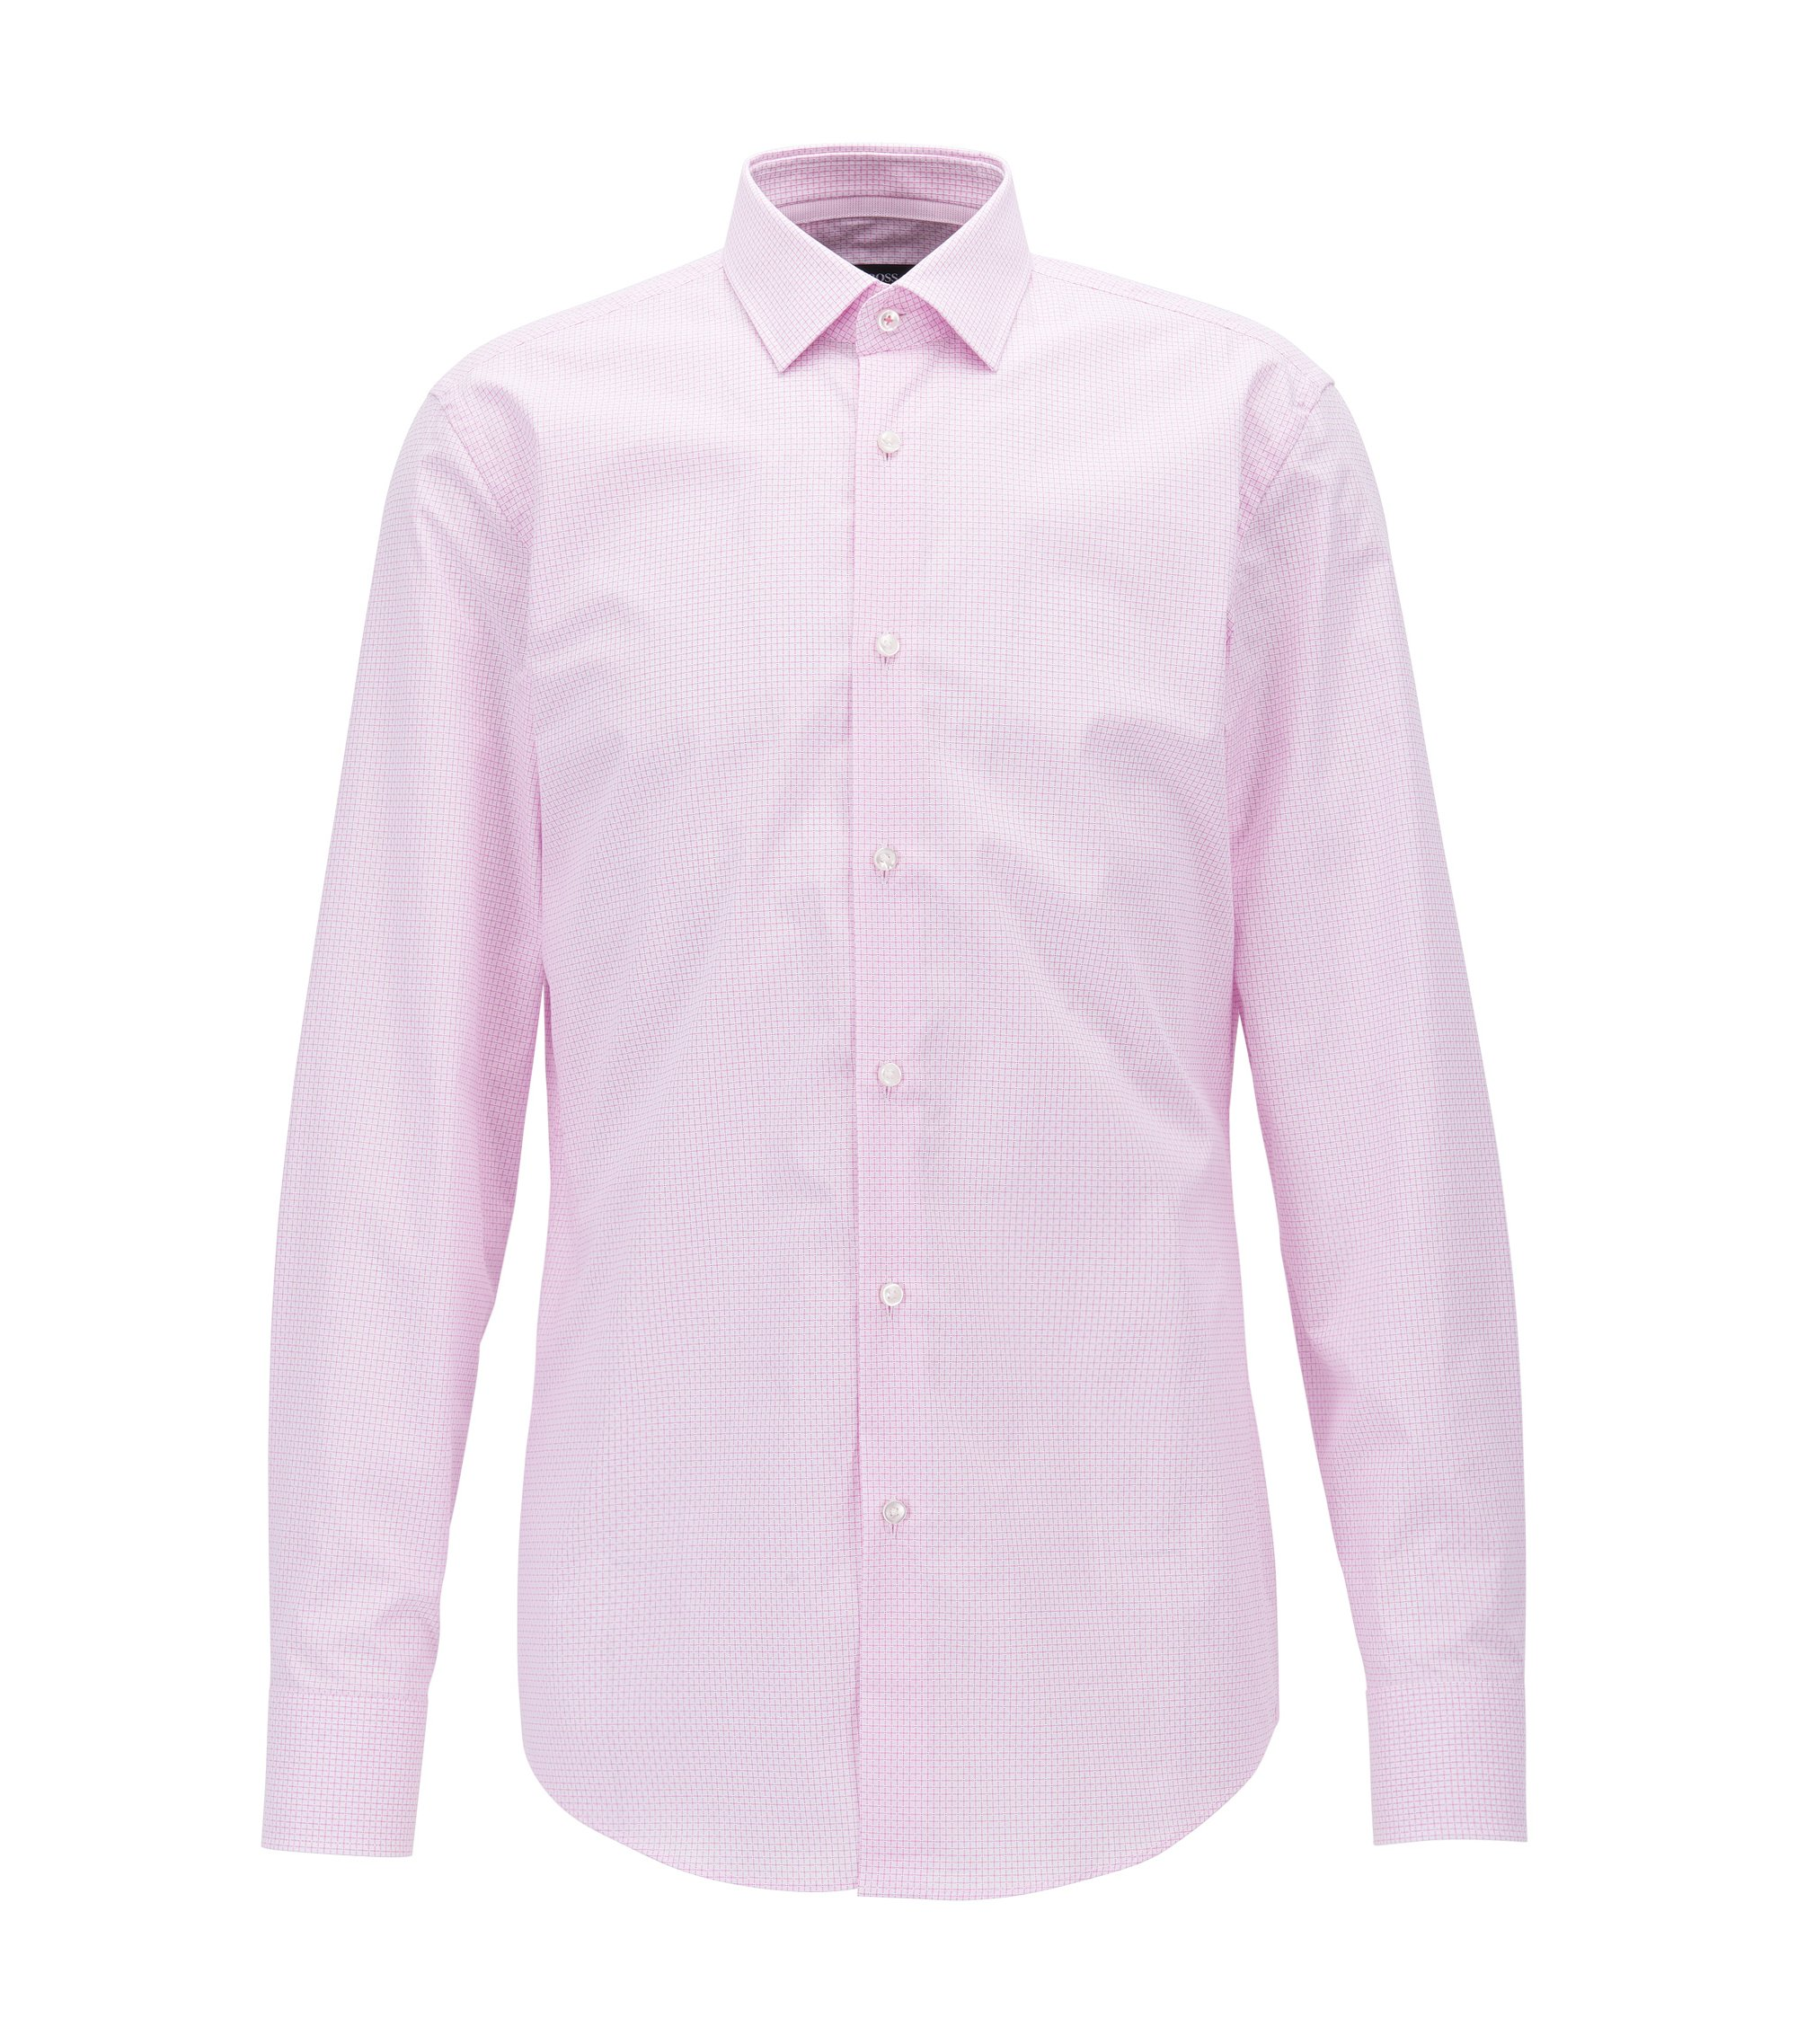 Slim-fit shirt in plain-check dobby cotton, light pink